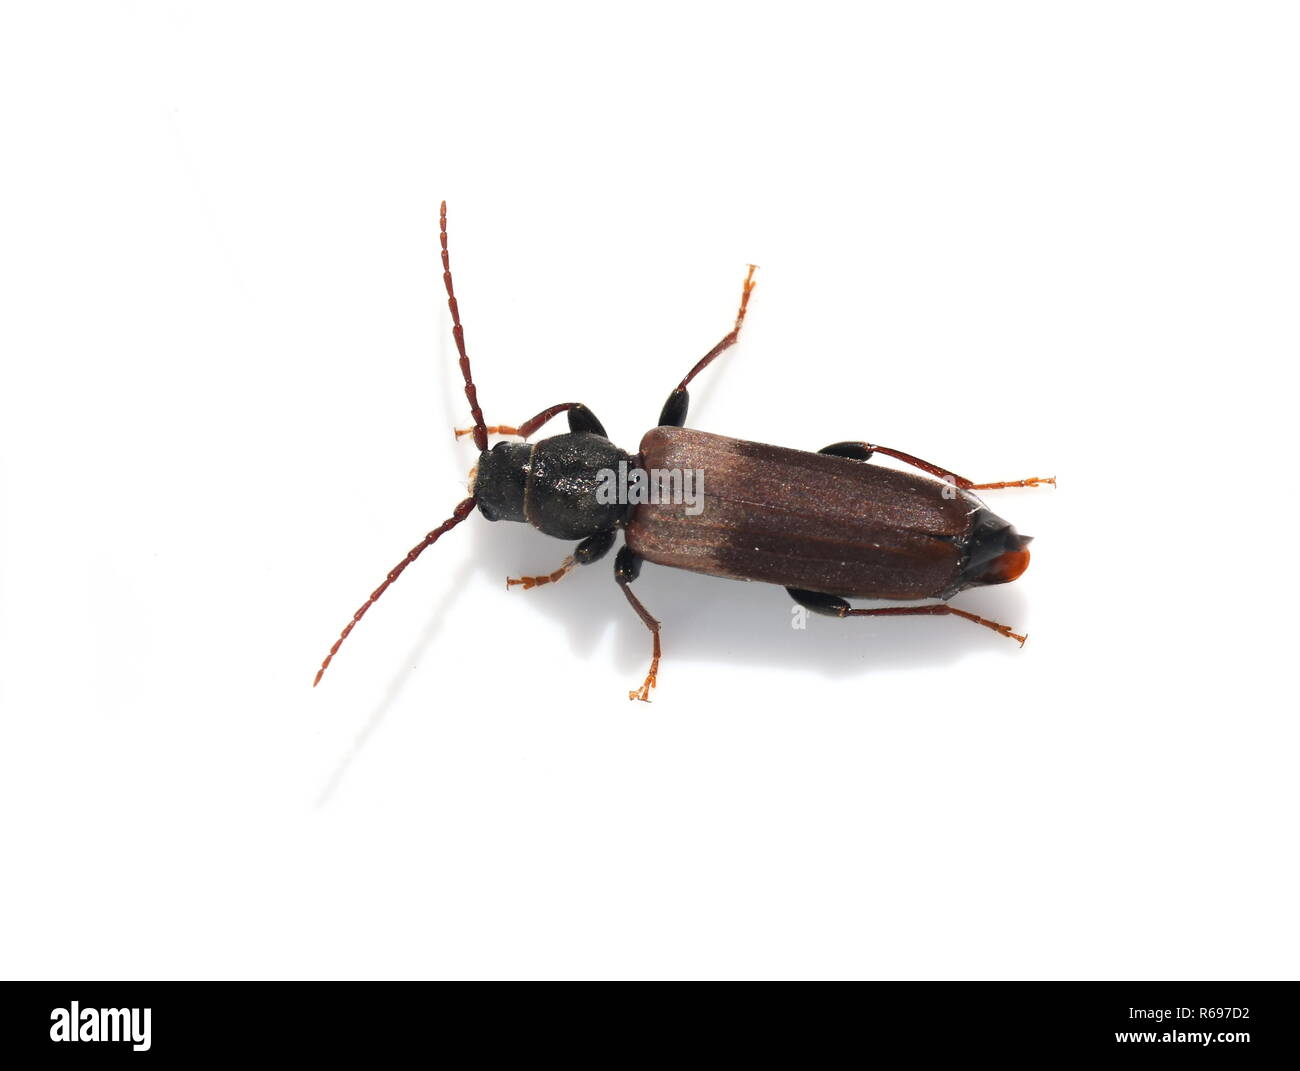 Brown spruce longhorn beetle Tetropium fuscum on white background - Stock Image